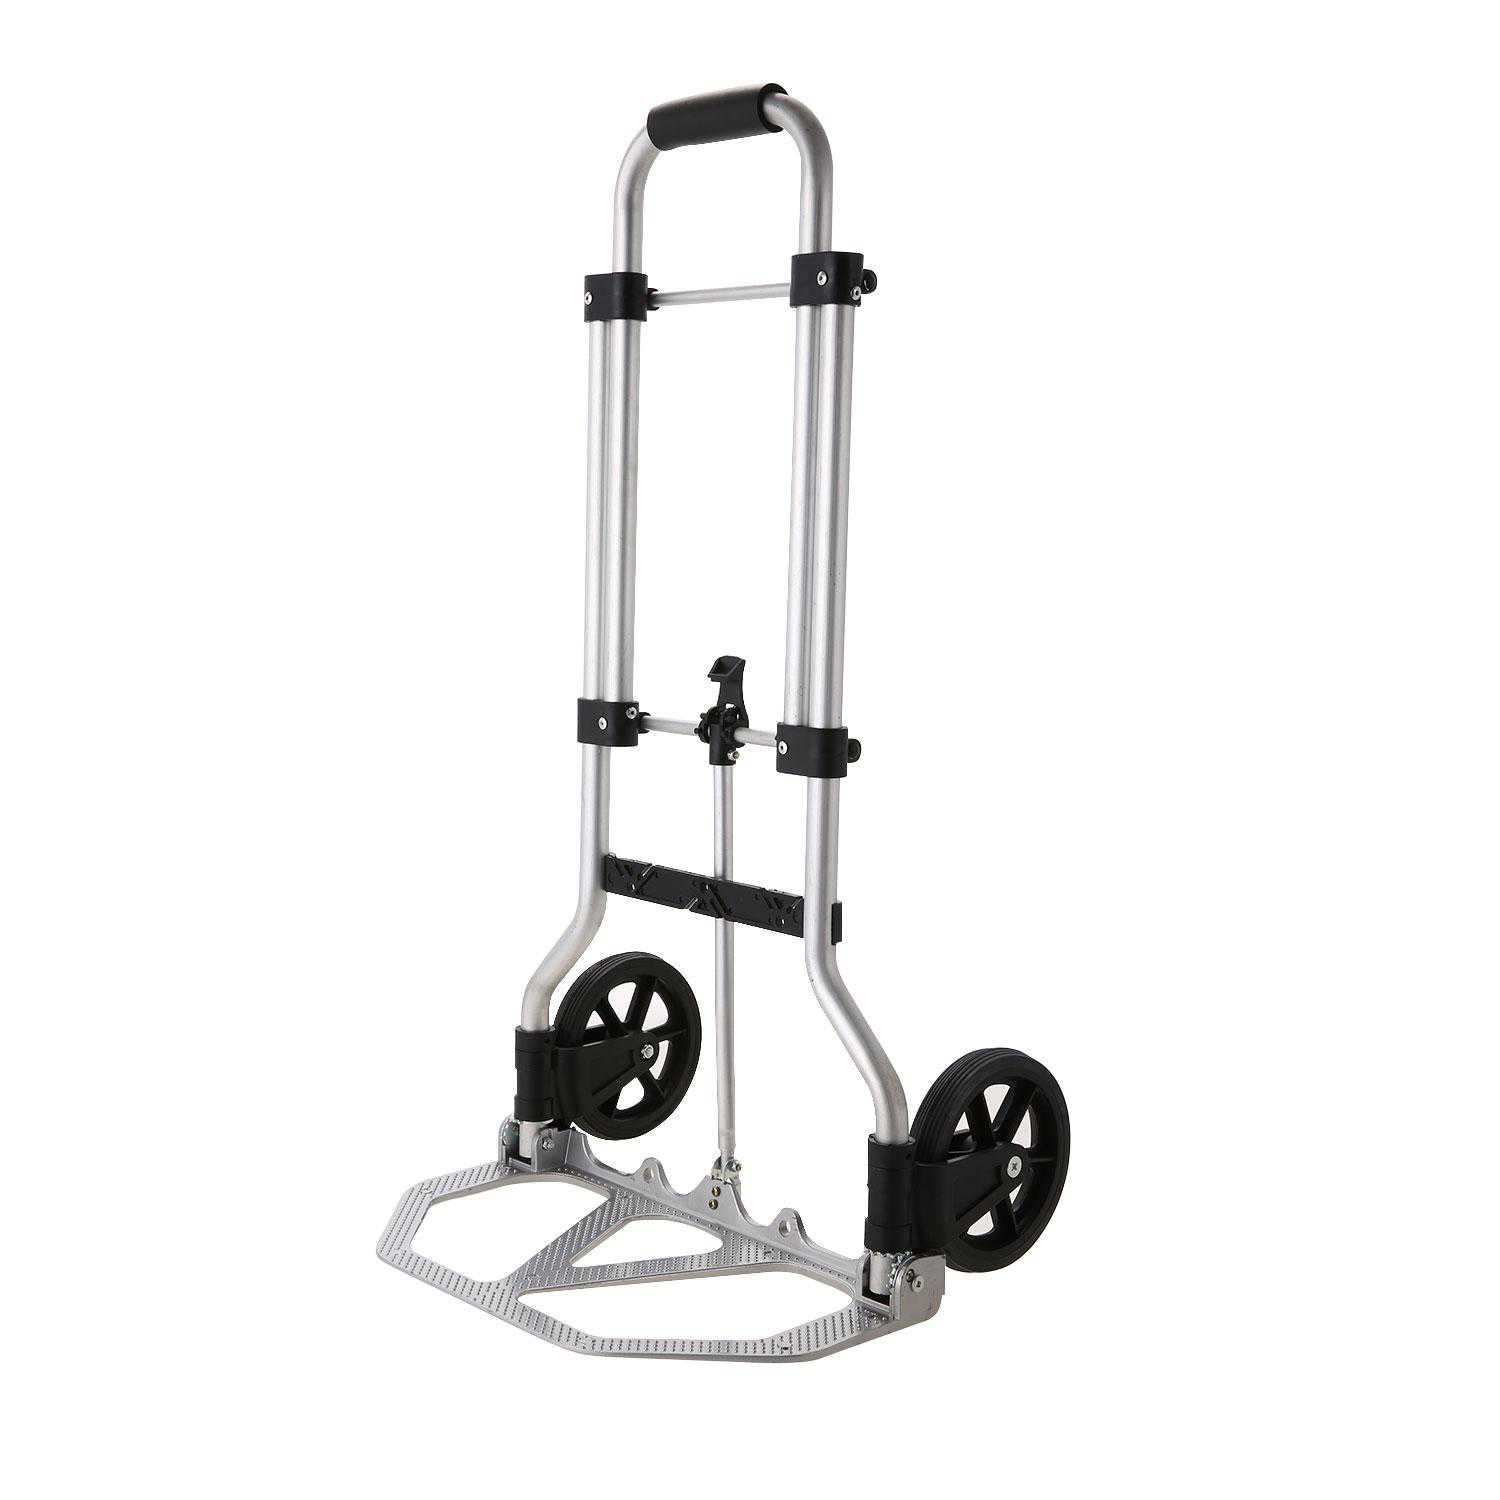 Folding Hand Truck and Dolly, 165 Lb Capacity Heavy-Duty Luggage Trolley Cart With Telescoping Handle and Rubber Wheels,shopping bag ECBY